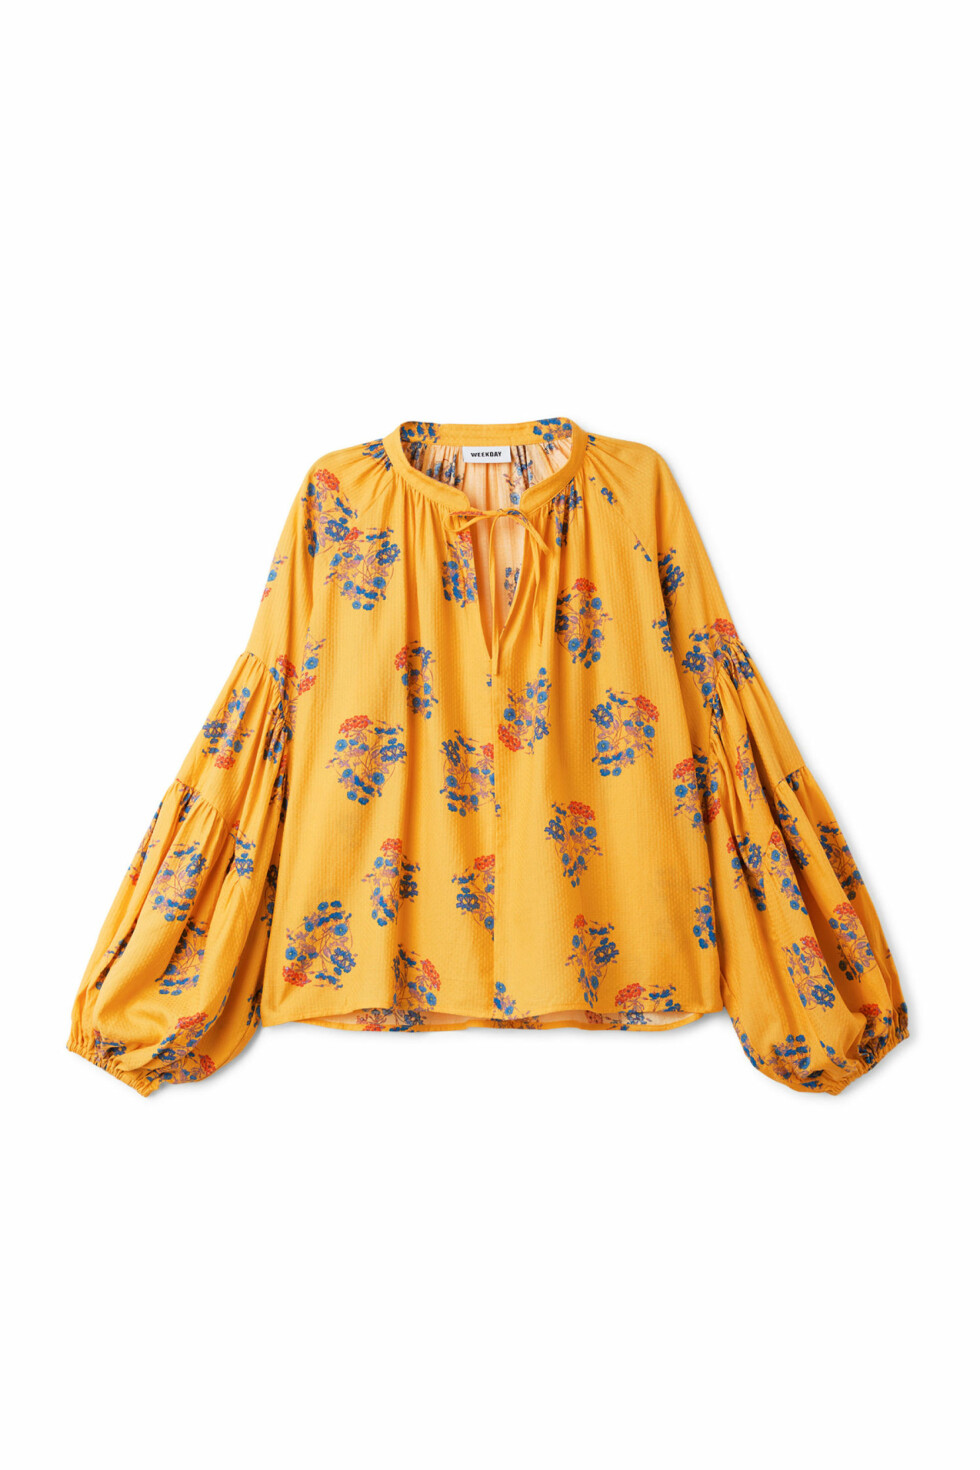 <strong>Topp fra Weekday |450,-| https:</strong>//www.weekday.com/en_sek/women/categories/all/product.miles-blouse-yellow.0587369002.html